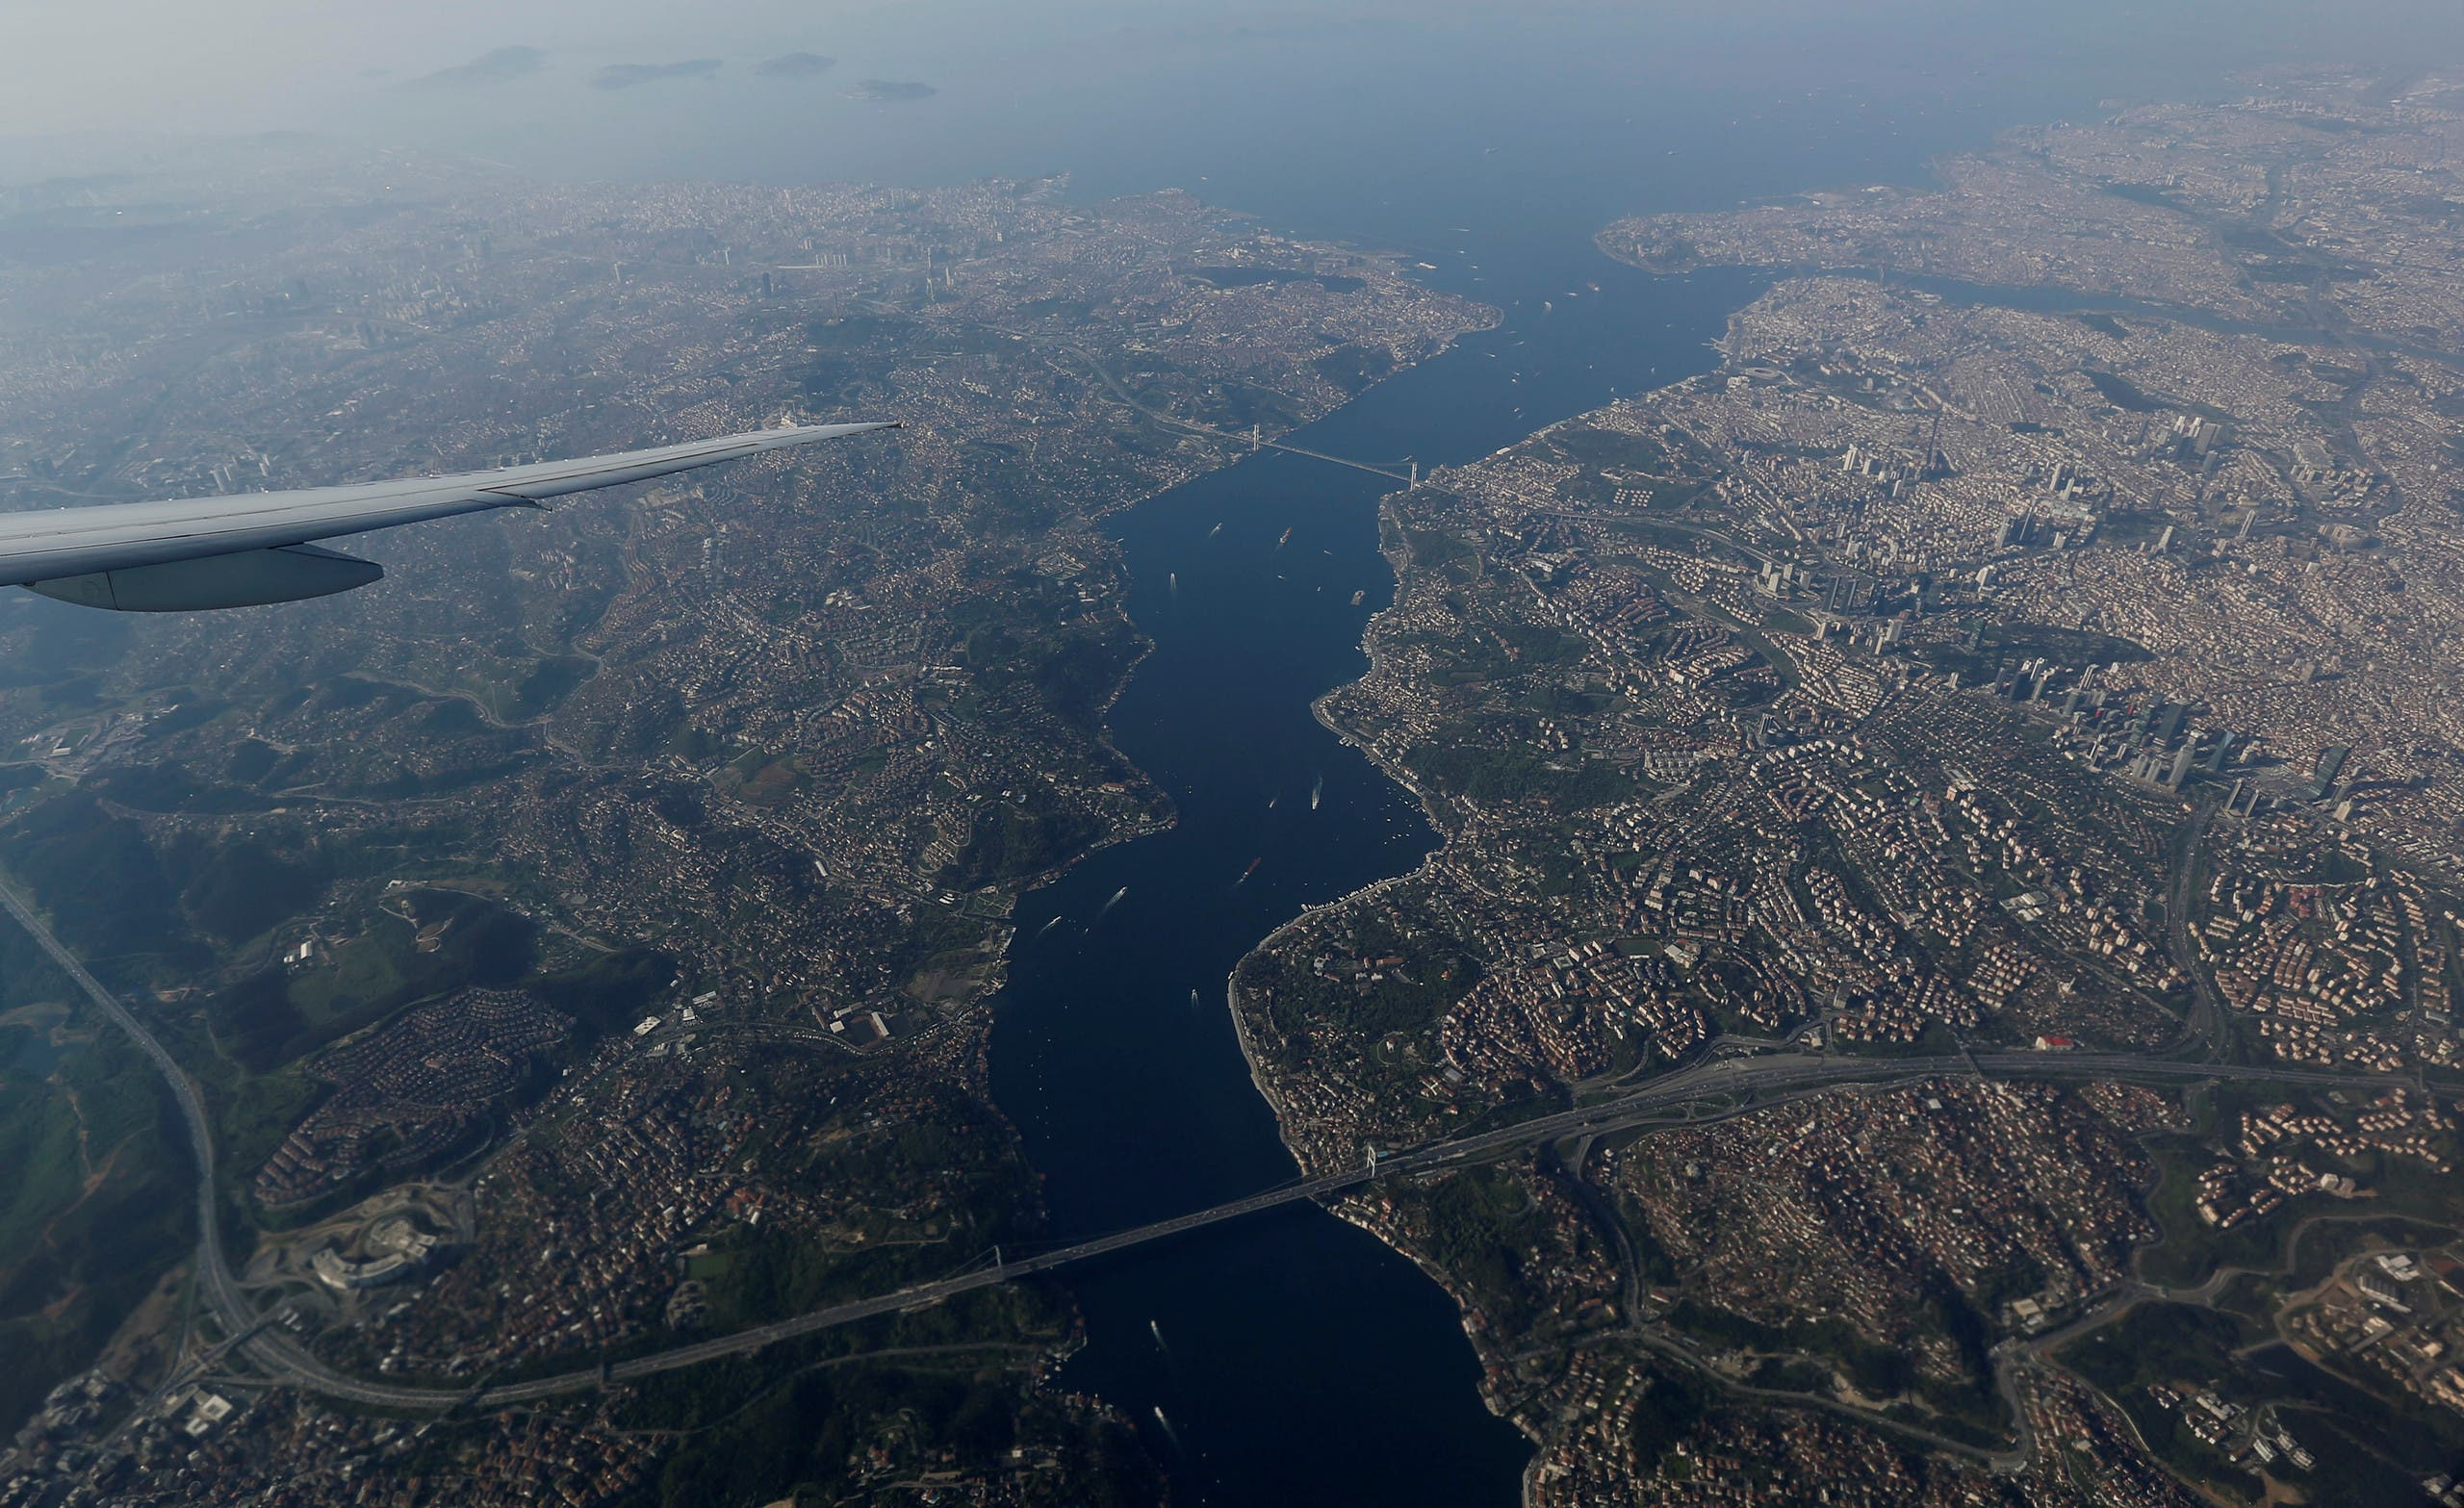 The Bosphorus strait is pictured through the window of a passenger aircraft over Istanbul, Turkey April 24, 2018. Picture taken April 24, 2018. (Reuters)